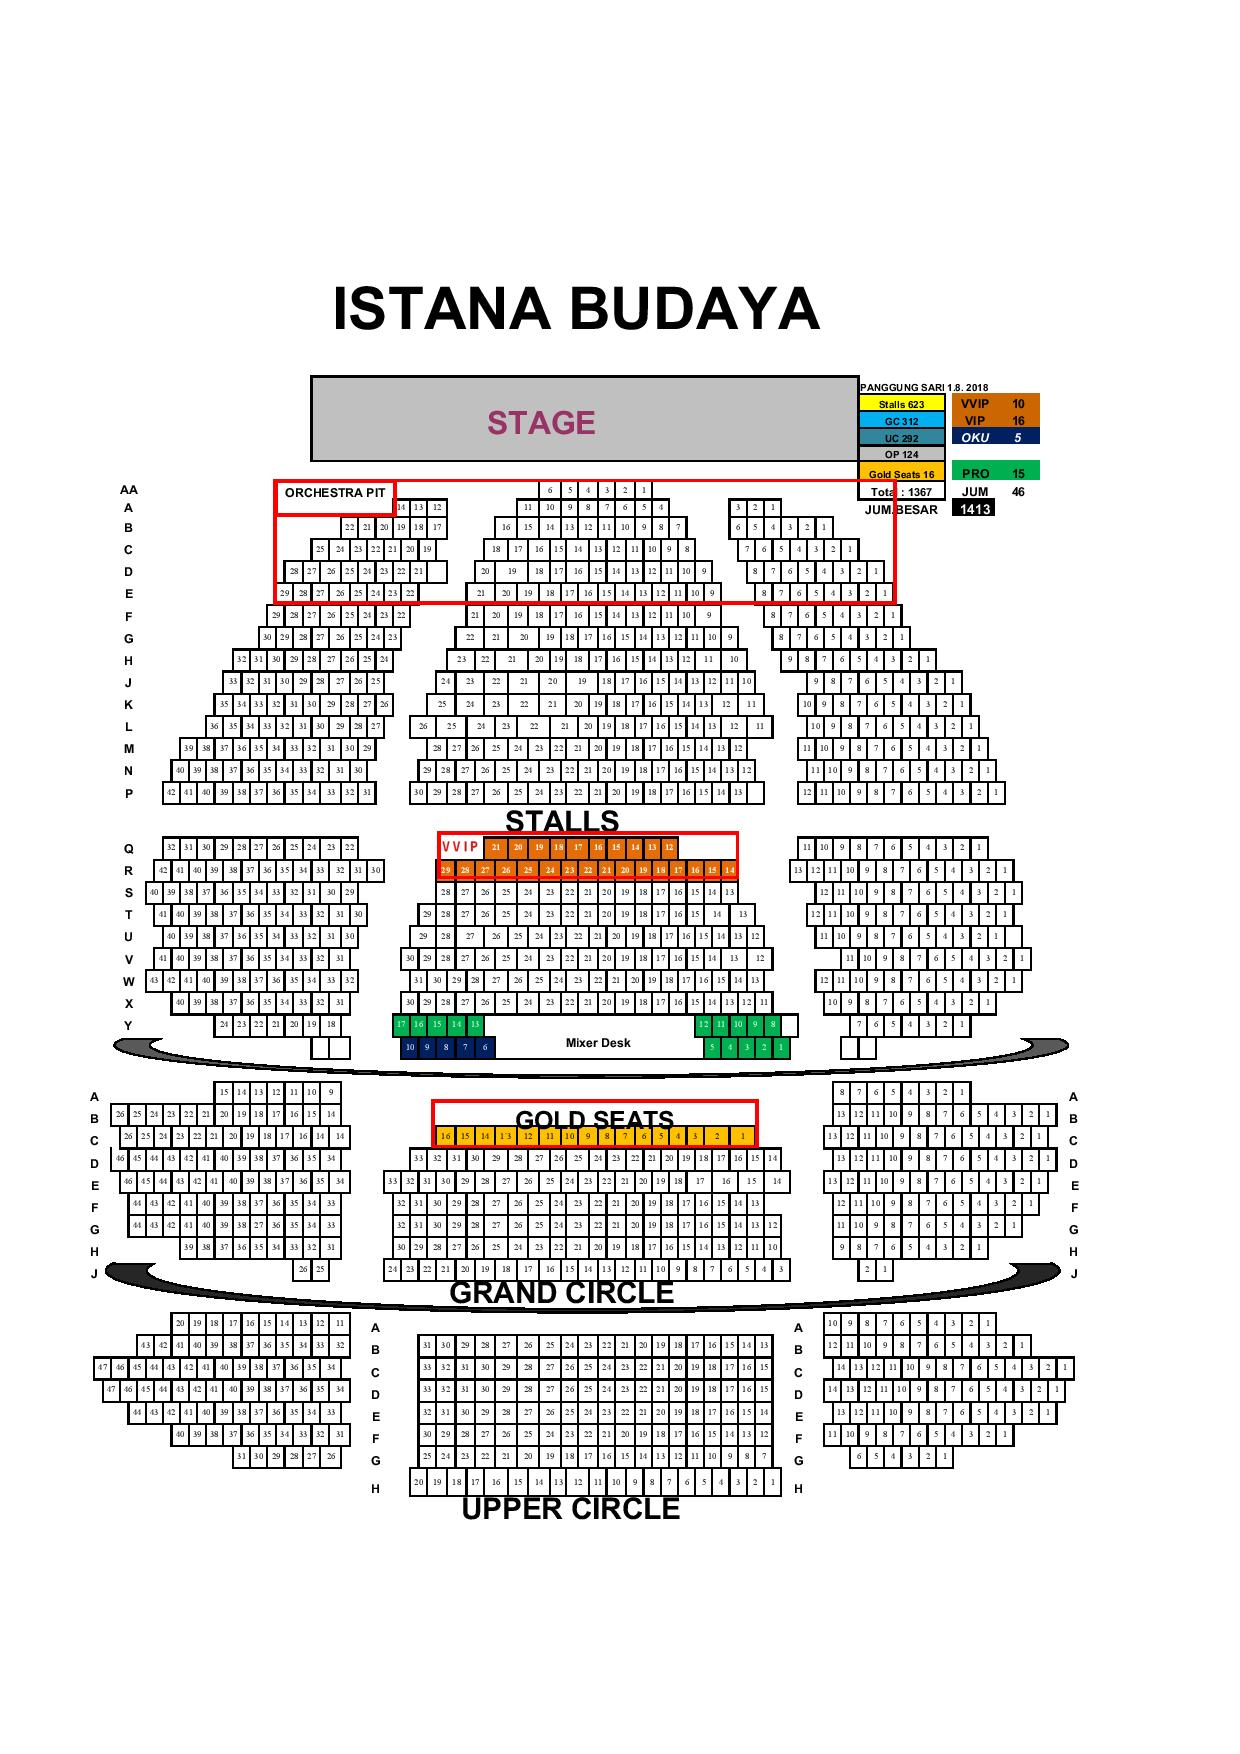 Istana Budaya seating layoutstyle=